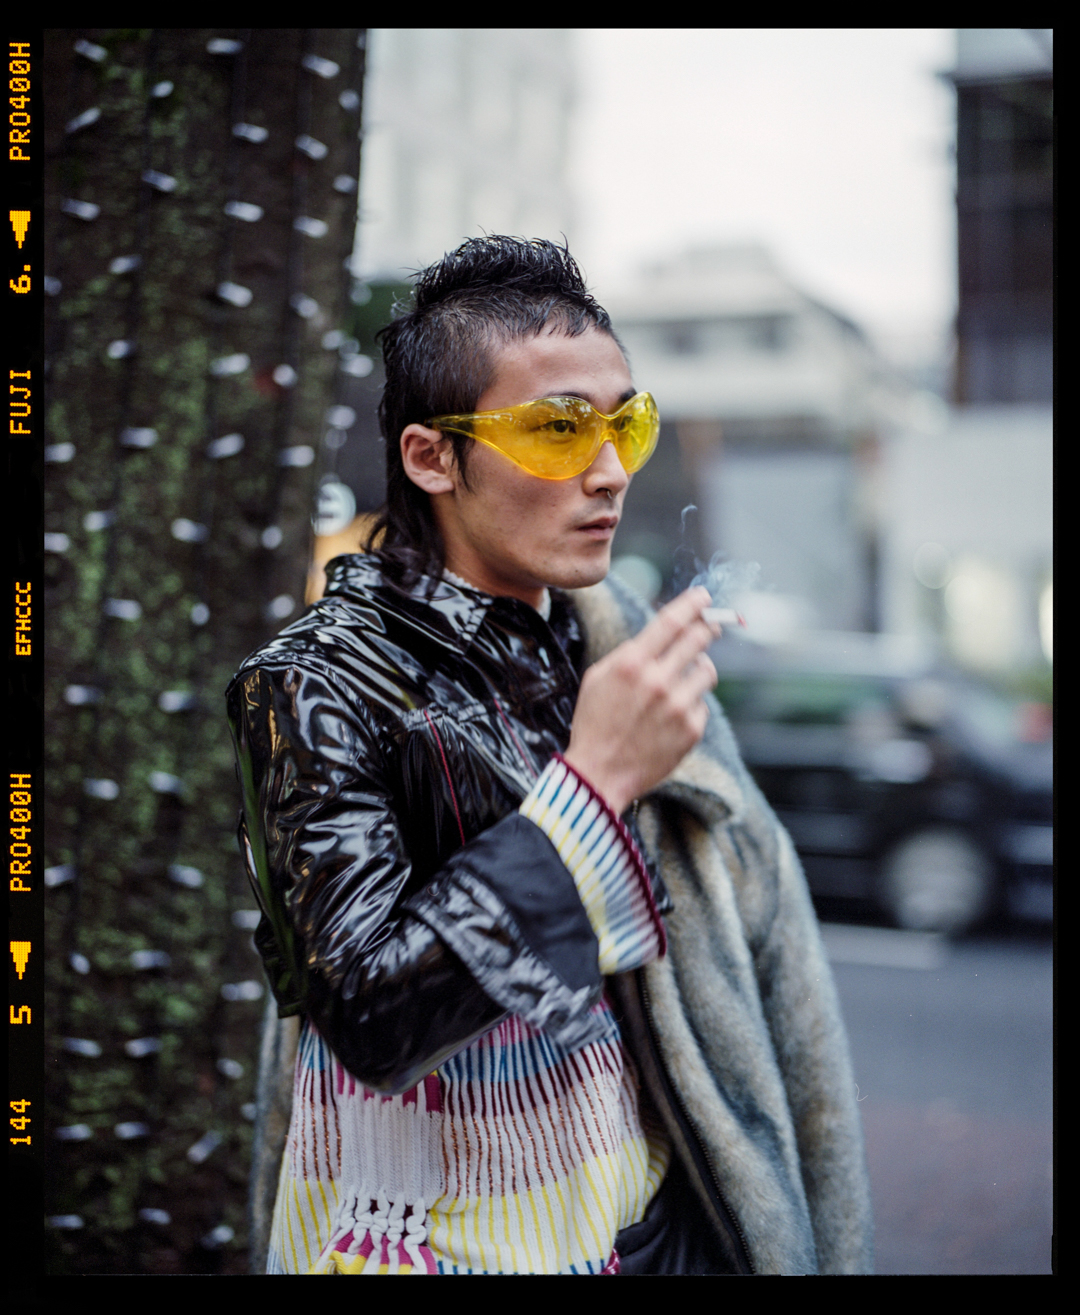 A young Japanese stylist with yellow-tinted glasses and PVC jacket in Omotesando